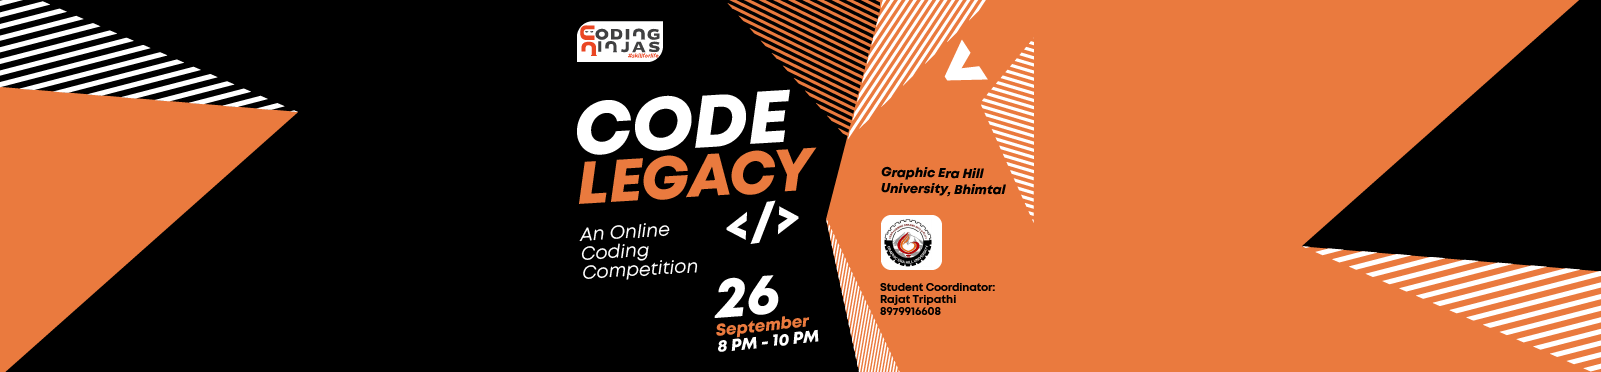 "Code Legacy at ""Graphic Era Hill University, Bhimtal """